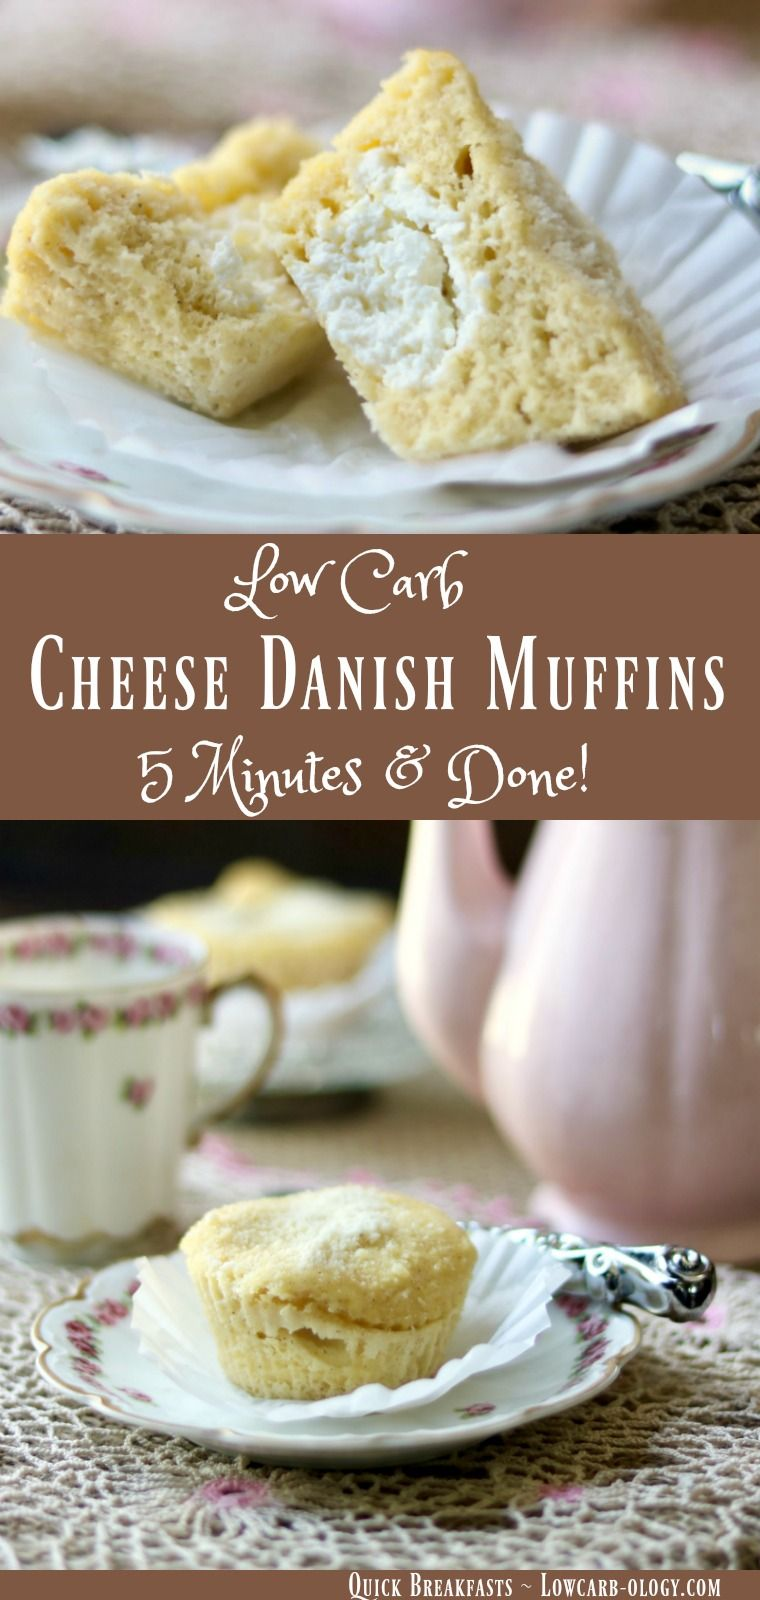 This low carb cheese danish muffins recipe means breakfast is no longer boring. Quick, easy, and delicious, these muffins have about 3 net carbs each.From Lowcarb-ology.com